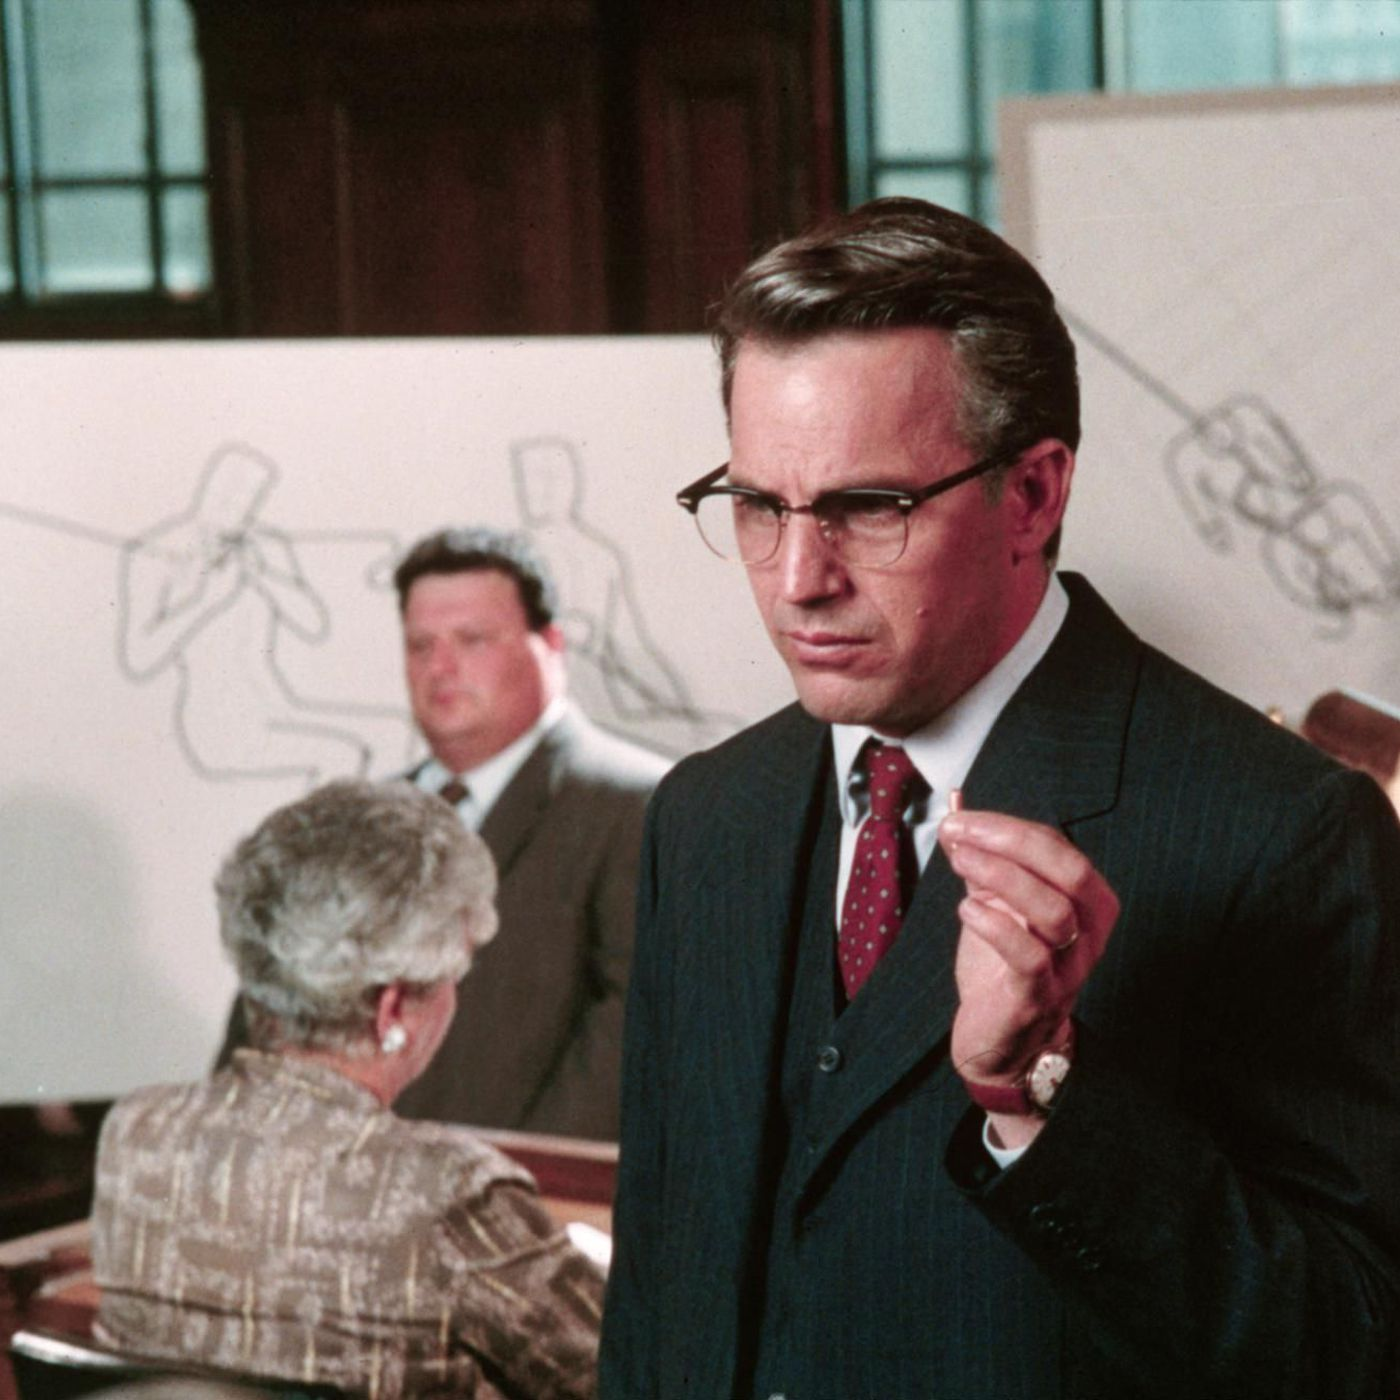 How a 1991 movie resulted in JFK's assassination files being